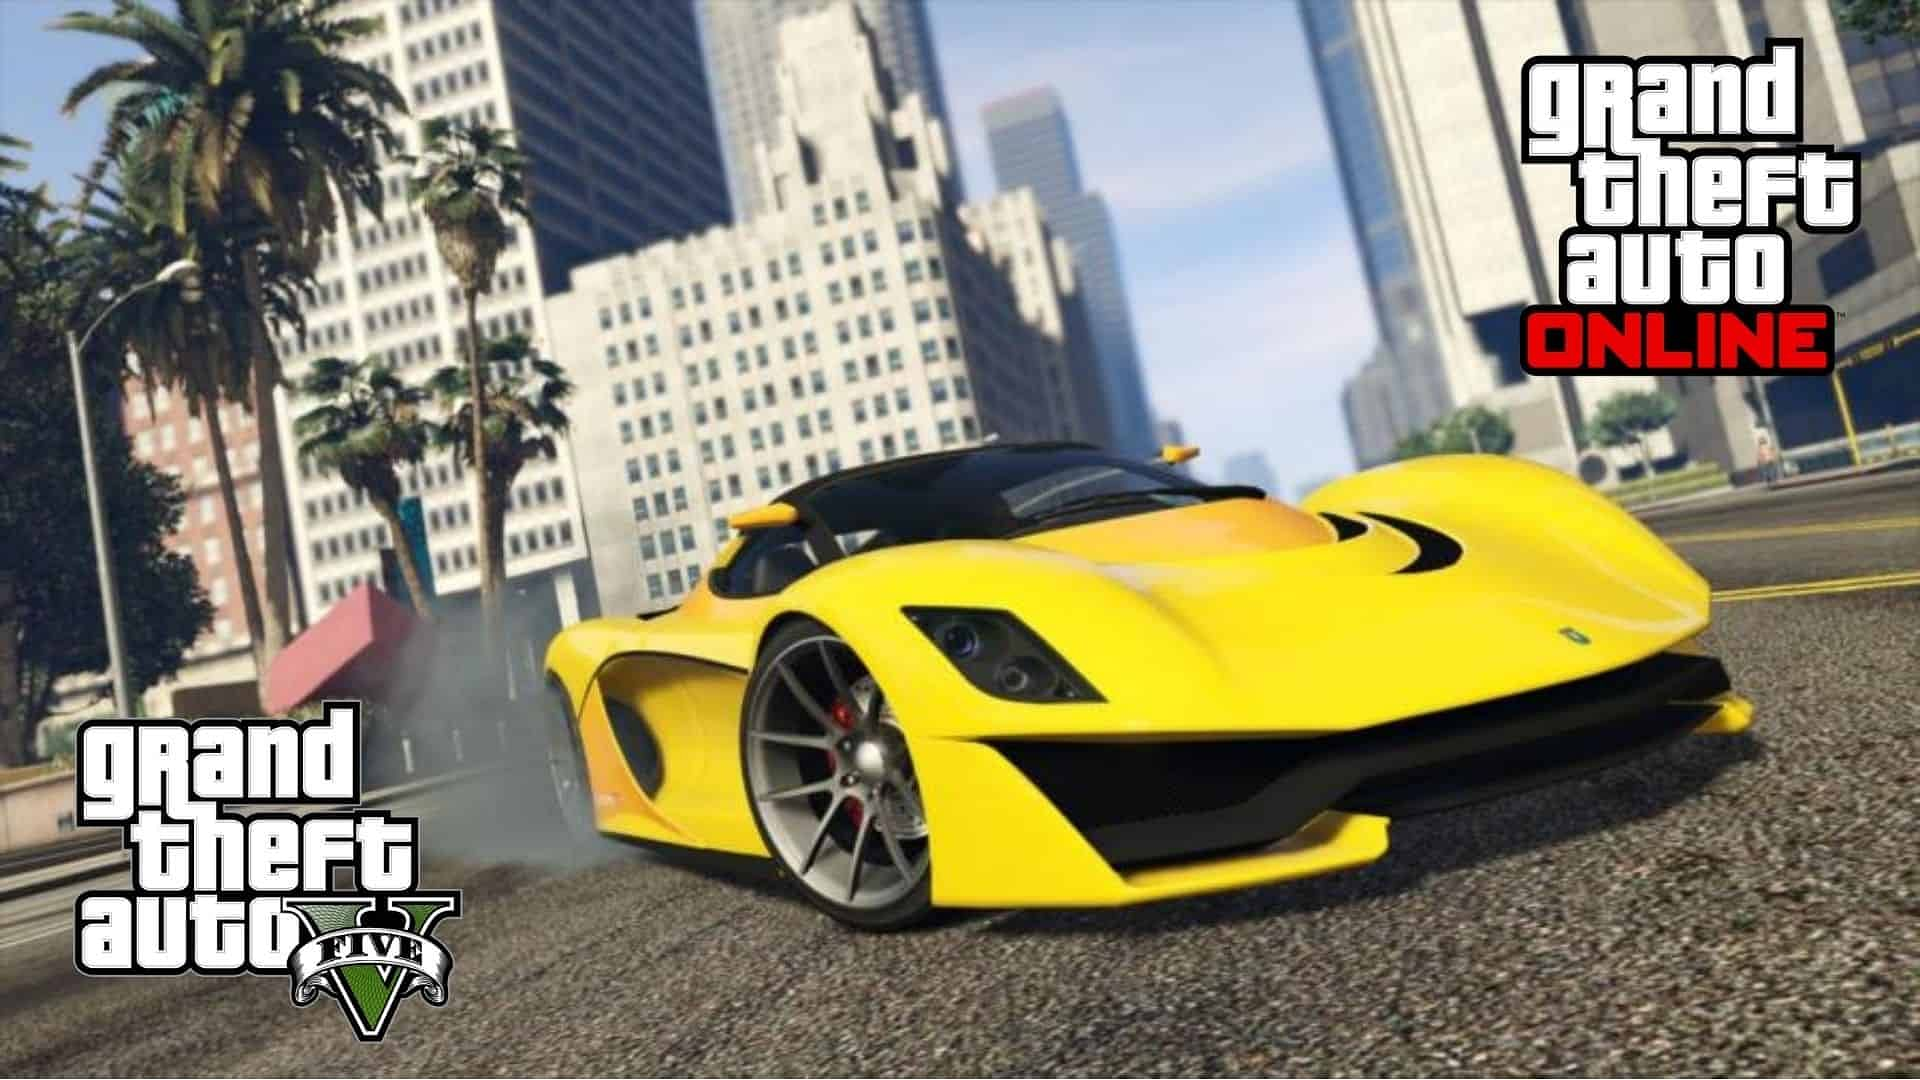 GTA 5 Free Download: How To Download GTA 5 on PC, Laptop